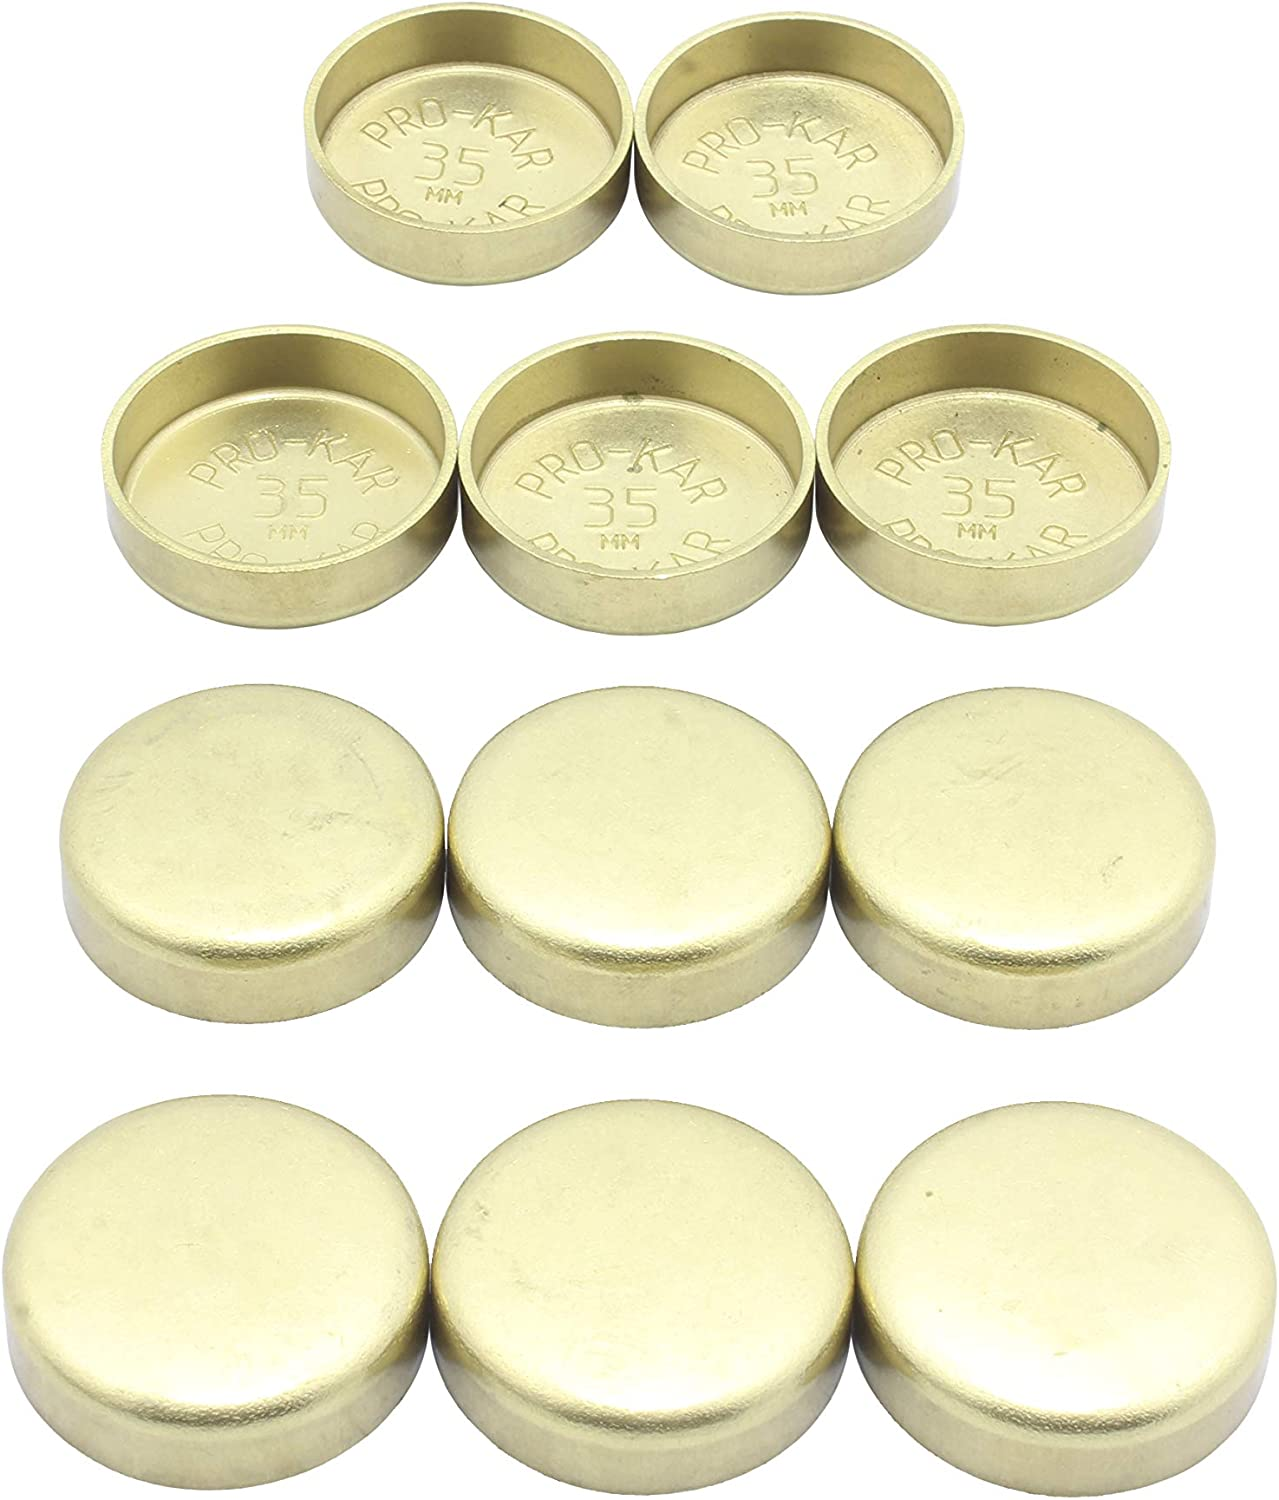 BRASS FREEZE CORE WELCH PLUG FOR TOYOTA 3S-FE 5S-FE CAMRY CELICA ...